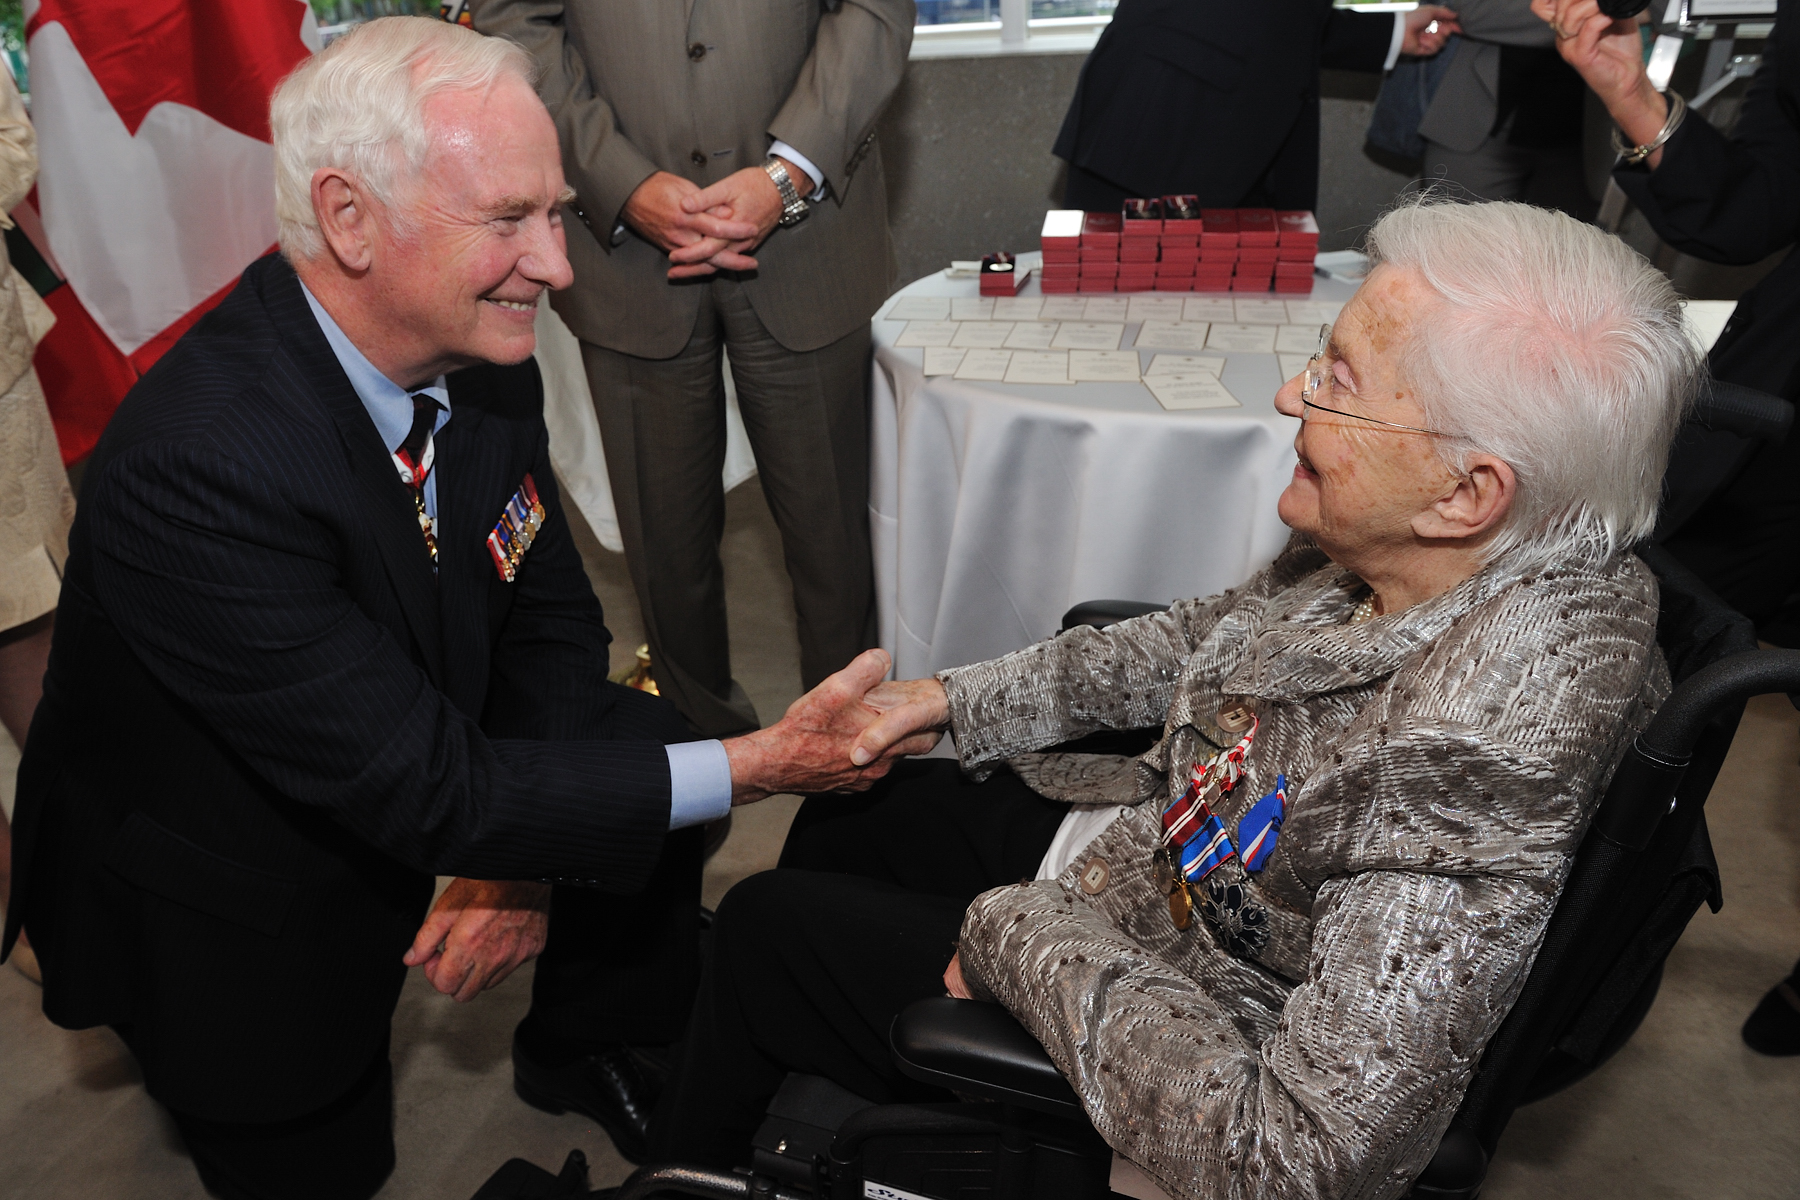 Elizabeth Ruth Bridgman, C.M., M.D., Member of the Order of Canada, had a chance to chat with His Excellency after receiving the Diamond Jubilee Medal.